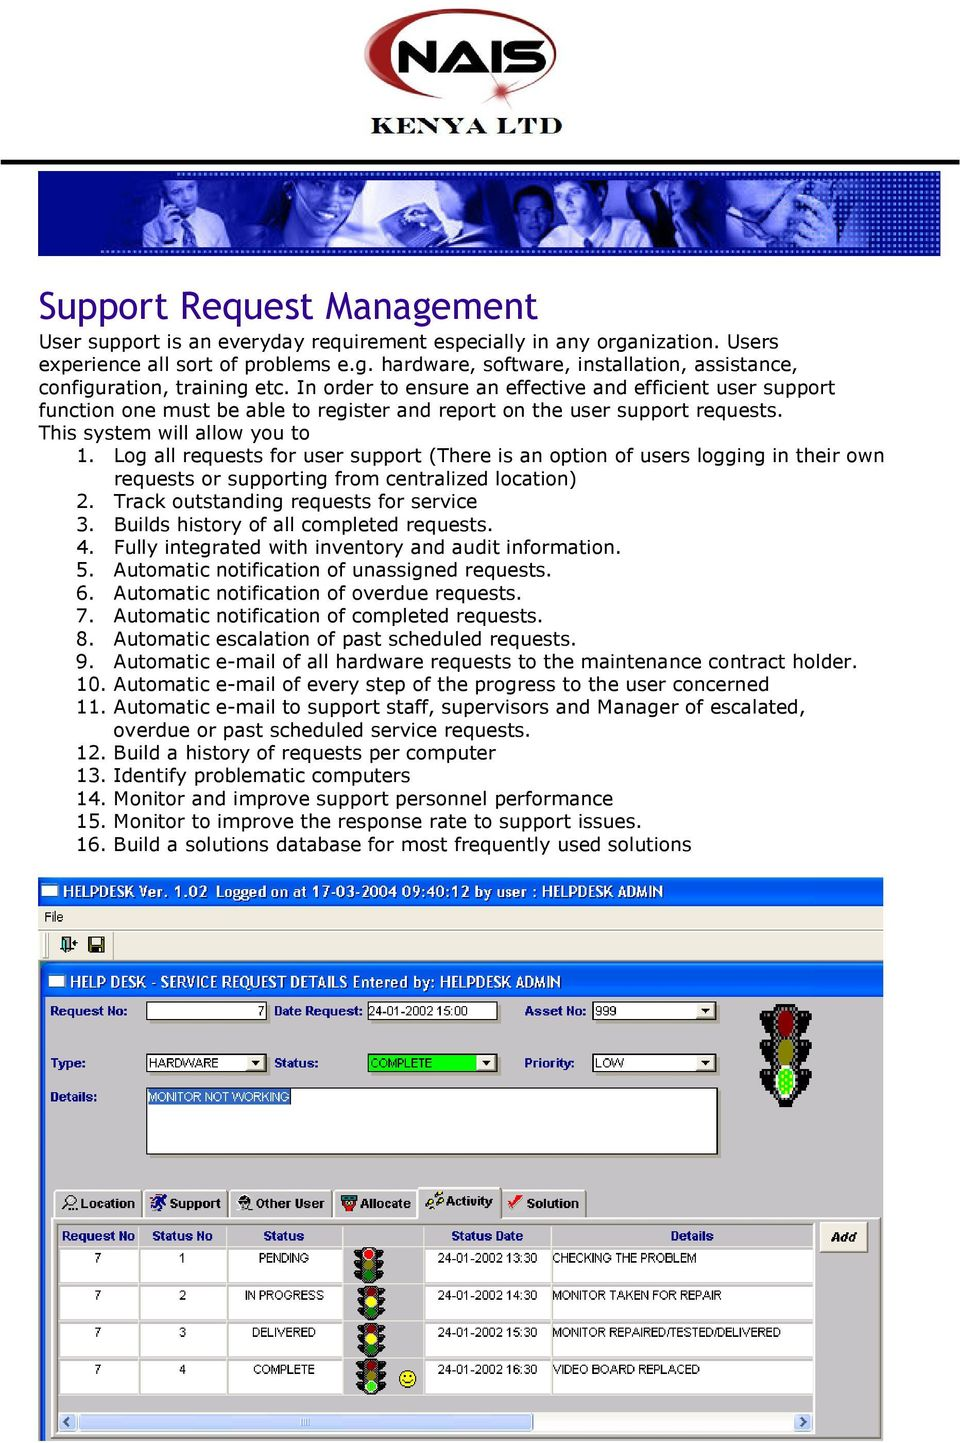 Log all requests for user support (There is an option of users logging in their own requests or supporting from centralized location) 2. Track outstanding requests for service 3.